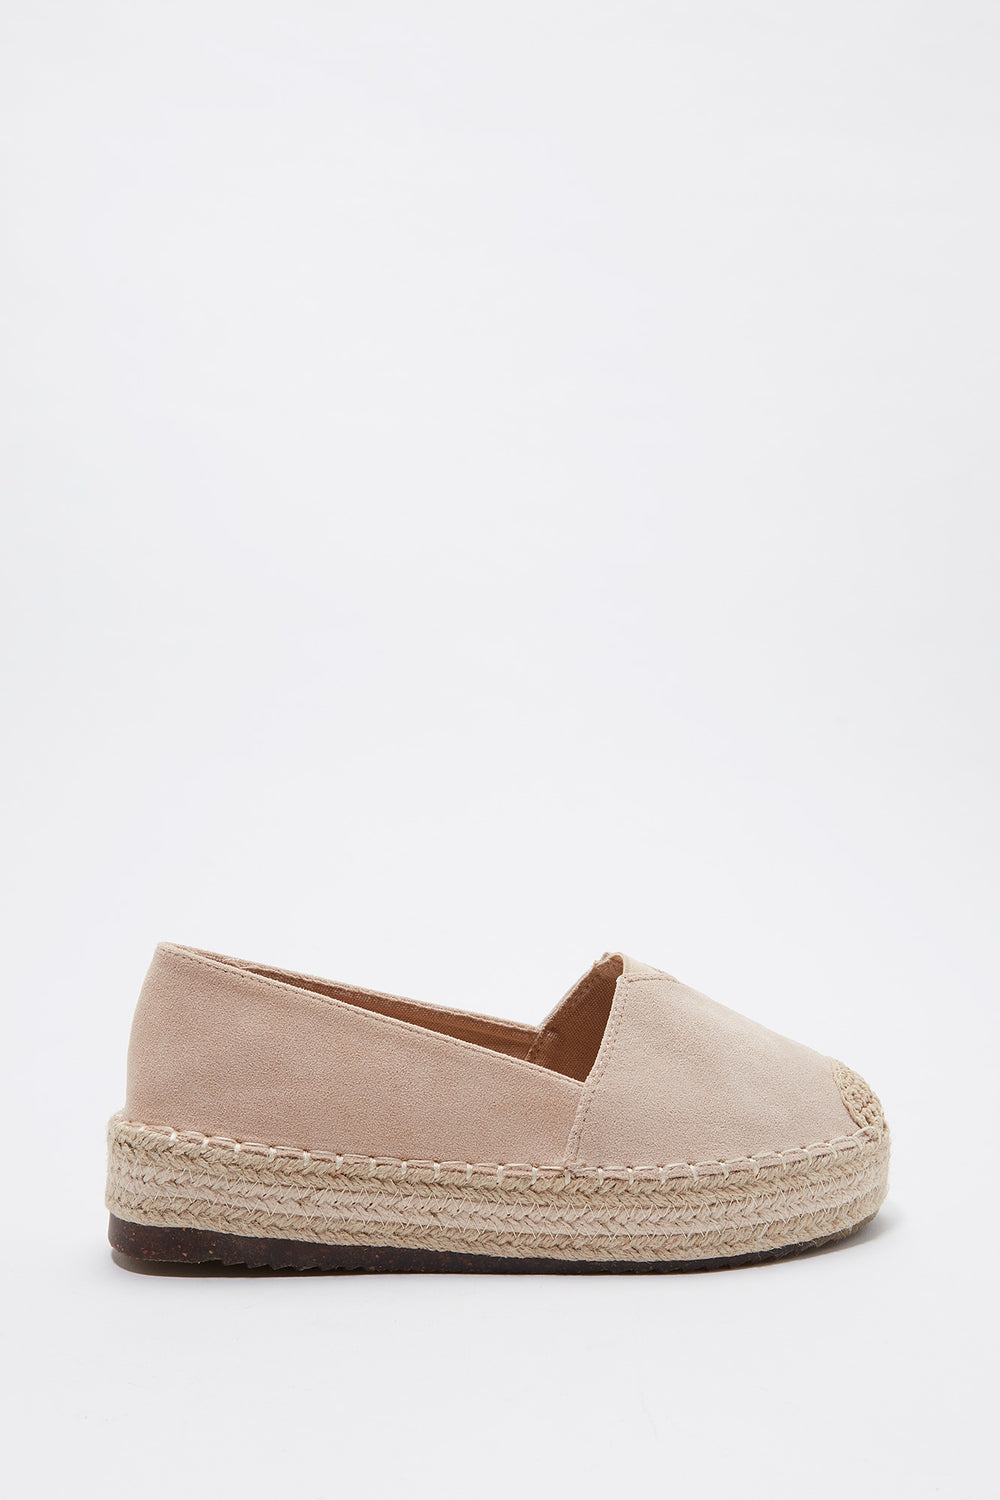 Slip On Platform Espadrille Natural